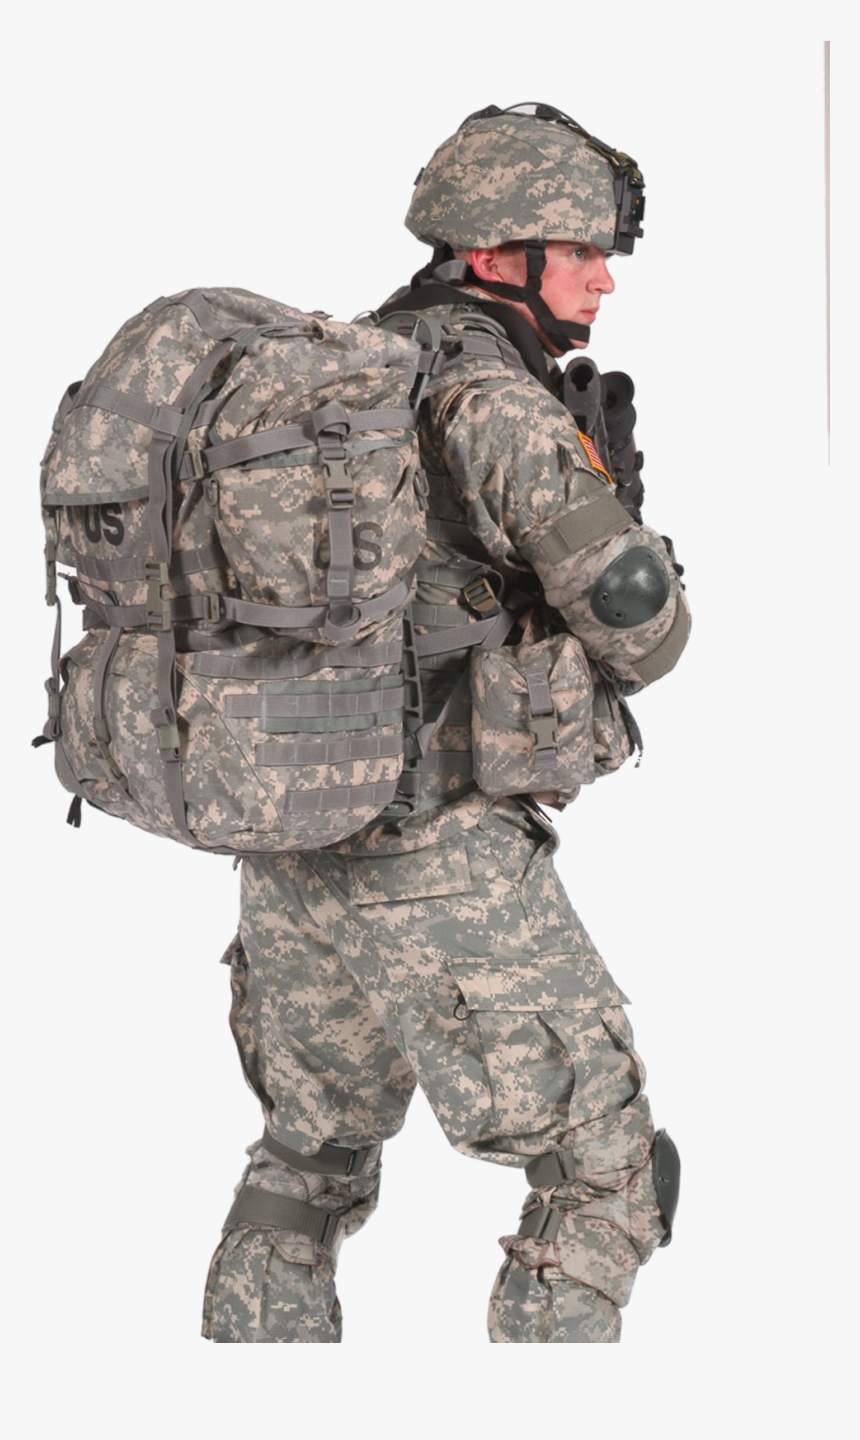 Us Army Soldier Png, Transparent Png, Free Download